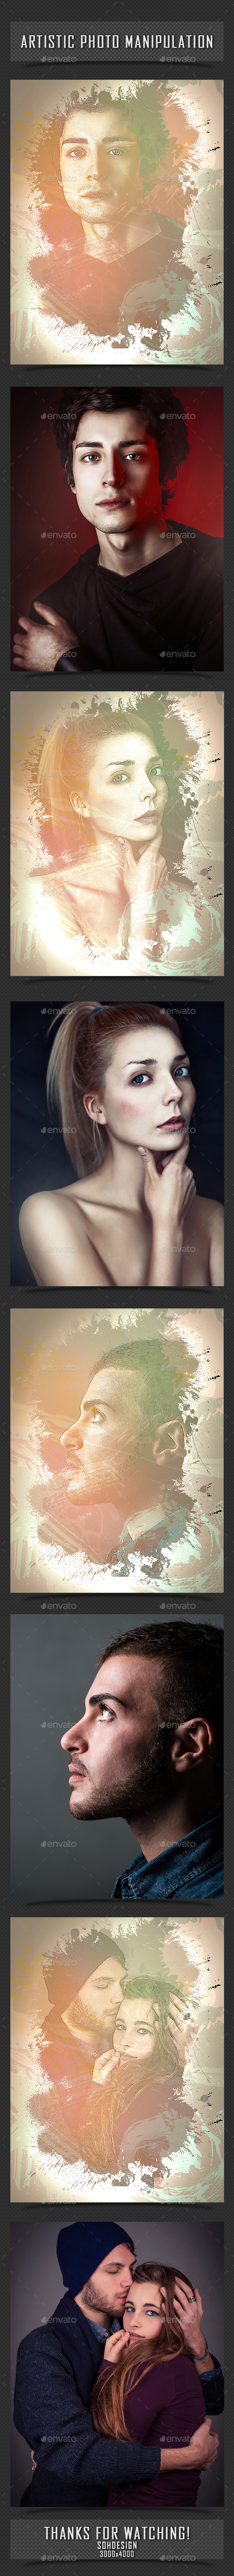 GraphicRiver Artistic Photo Manipulation 11454289